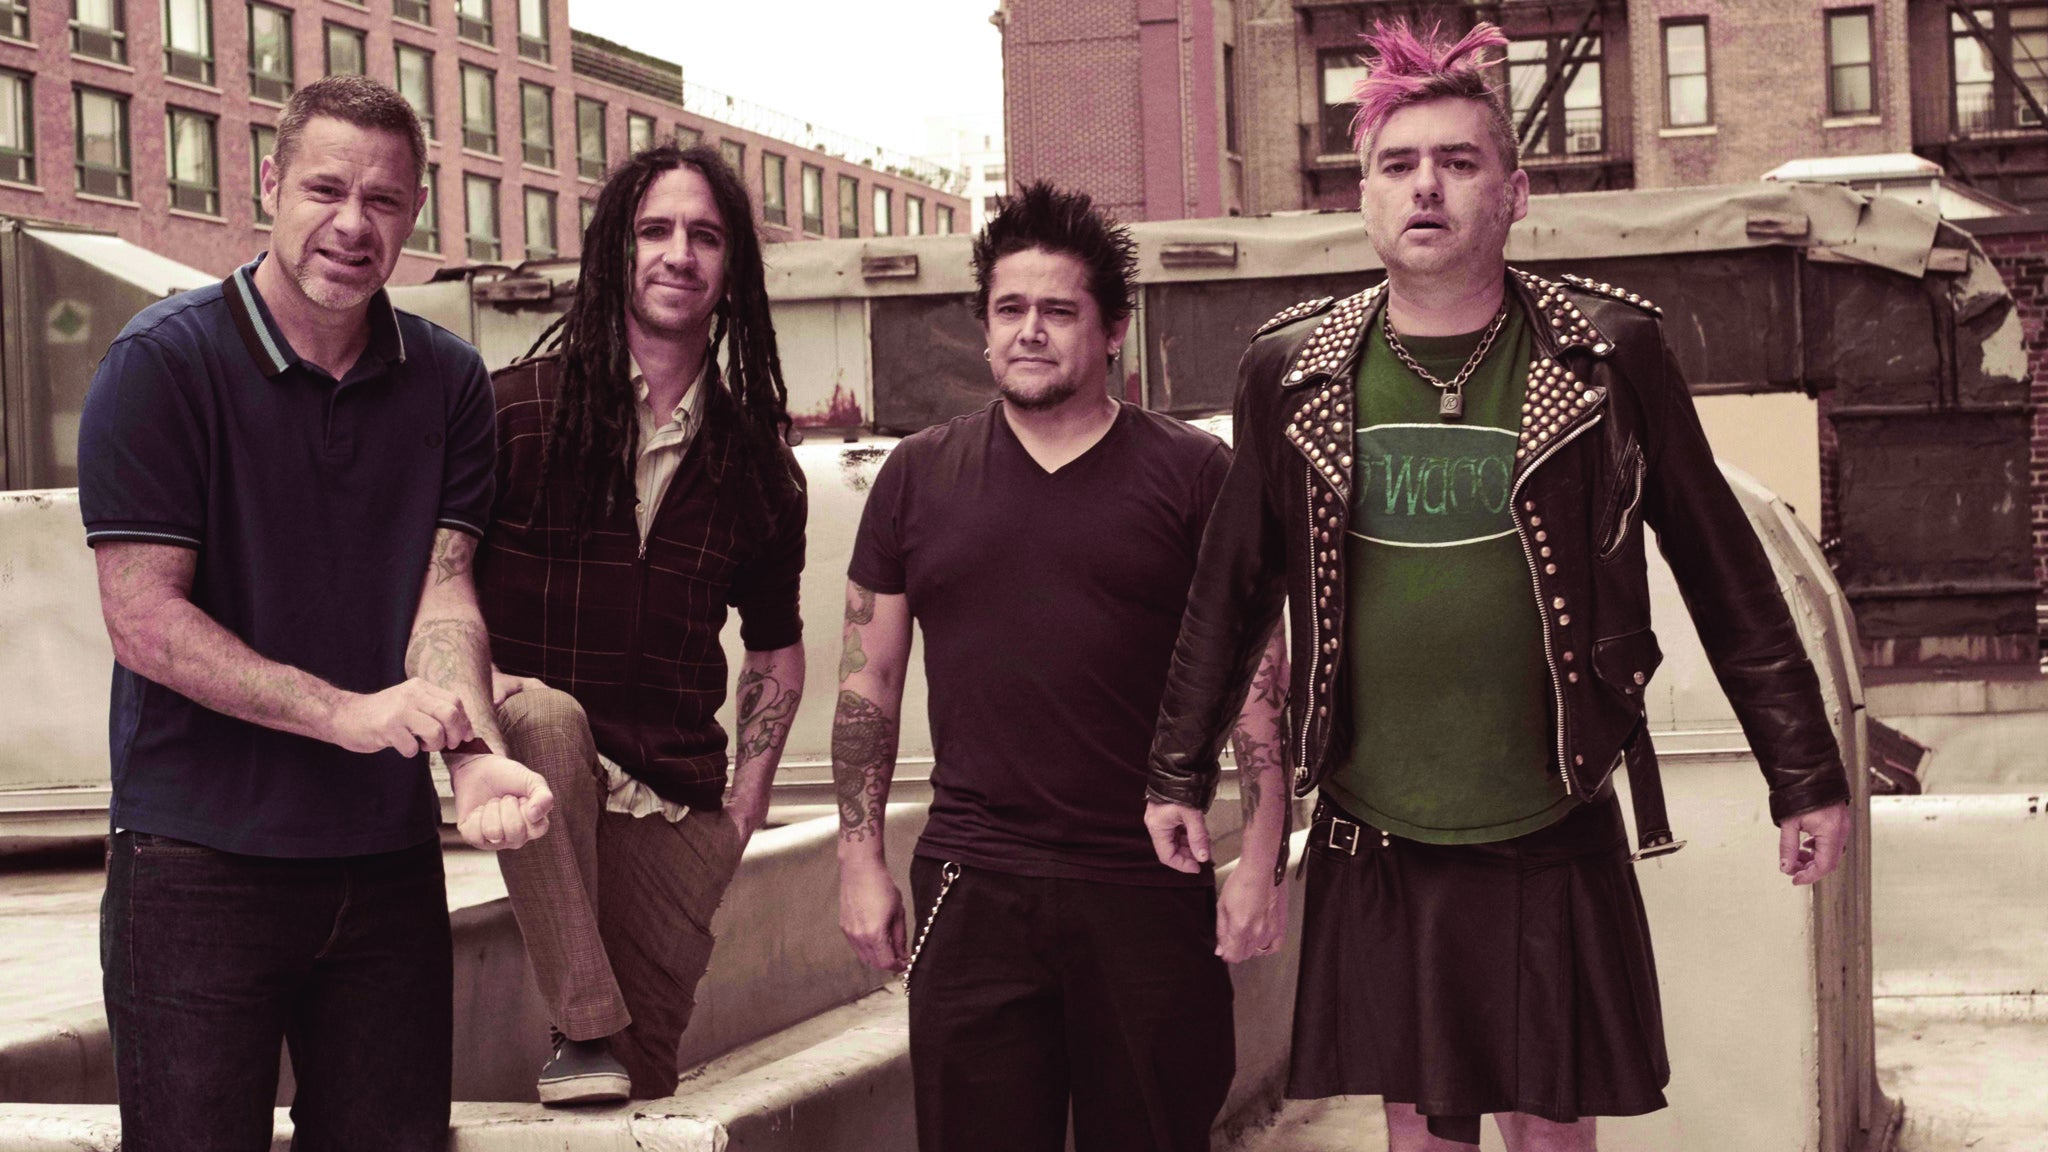 NOFX - First Ditch Effort Tour at Liberty Hall